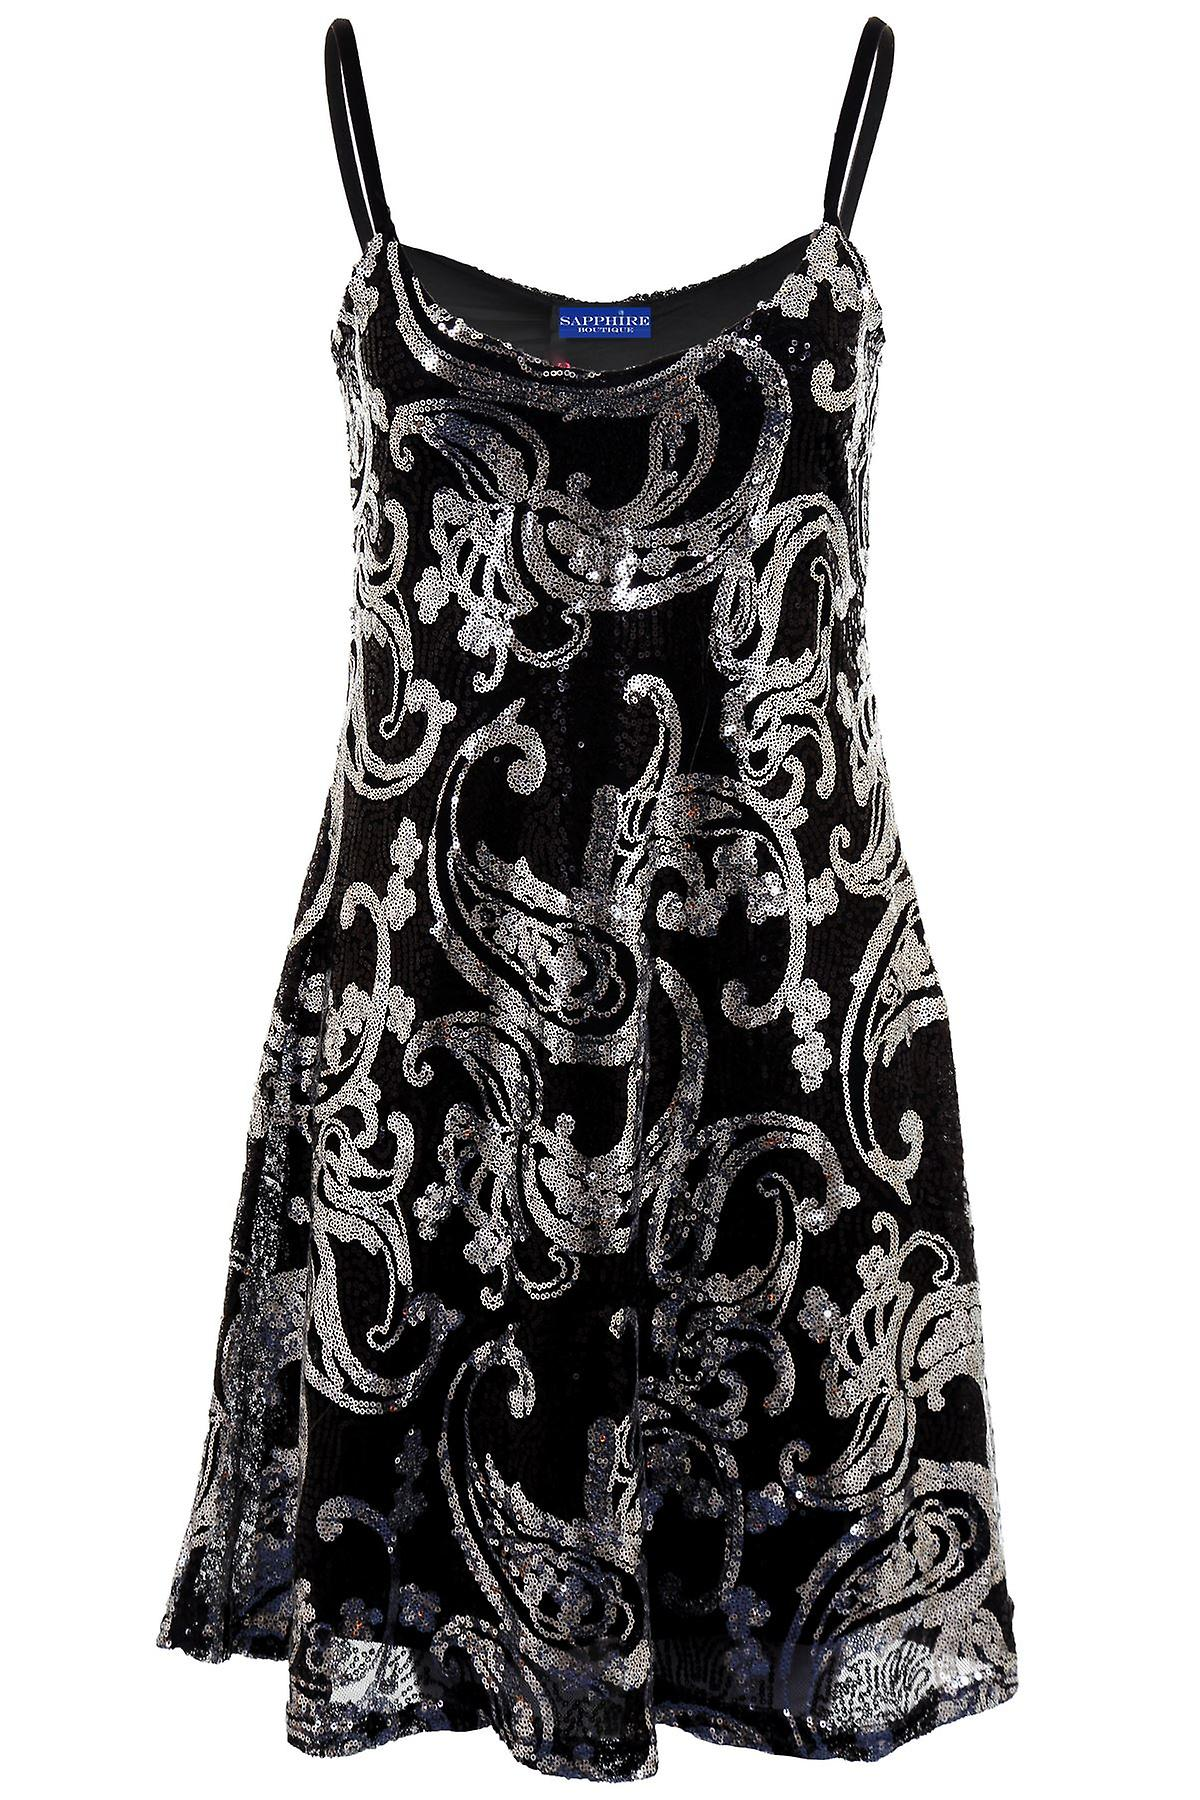 Ladies Sleeveless Strappy Sequin Paisley Lined Skater Flare Women's Party Dress